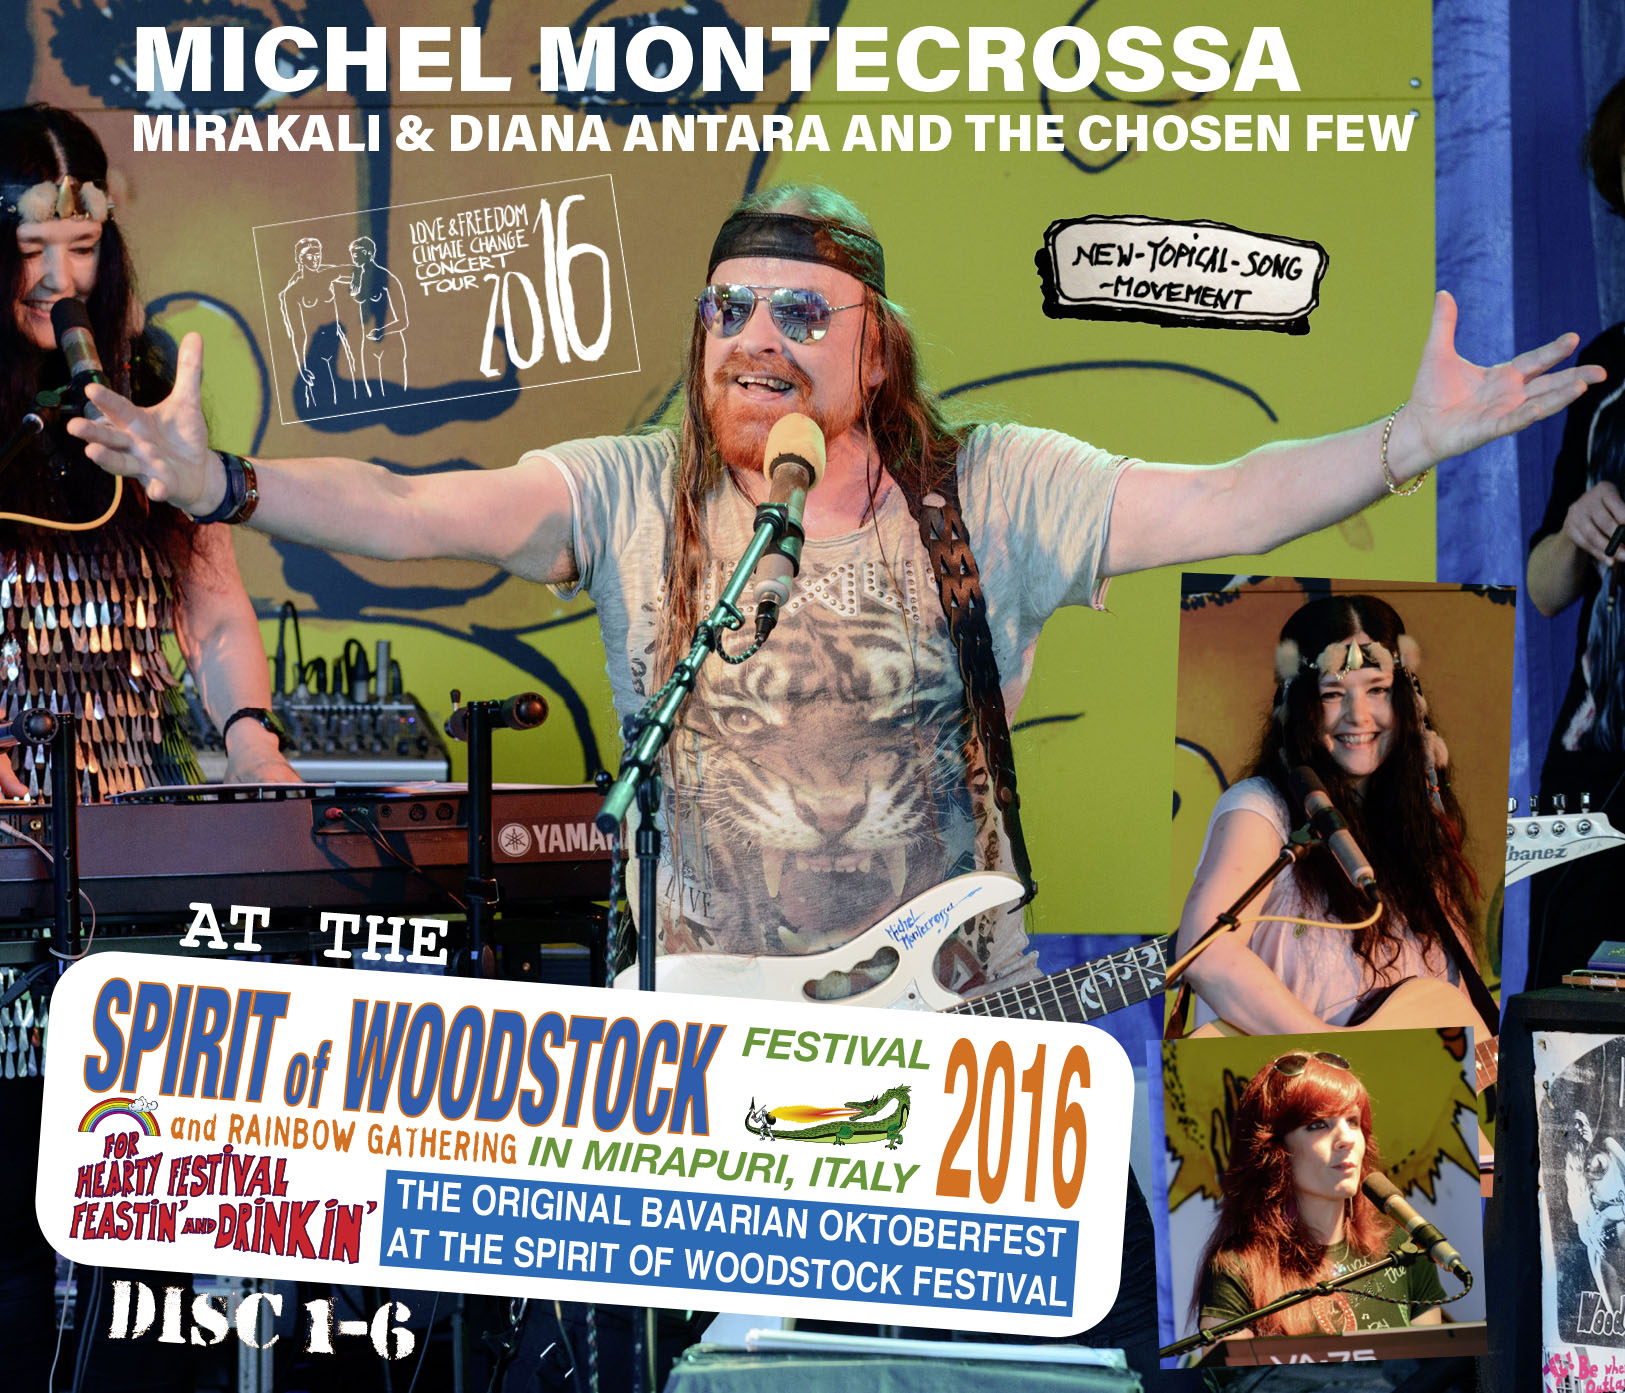 Michel Montecrossa, Mirakali and Diana Antara at the Spirit of Woodstock Festival 2016 in Mirapuri, Italy - Set 1